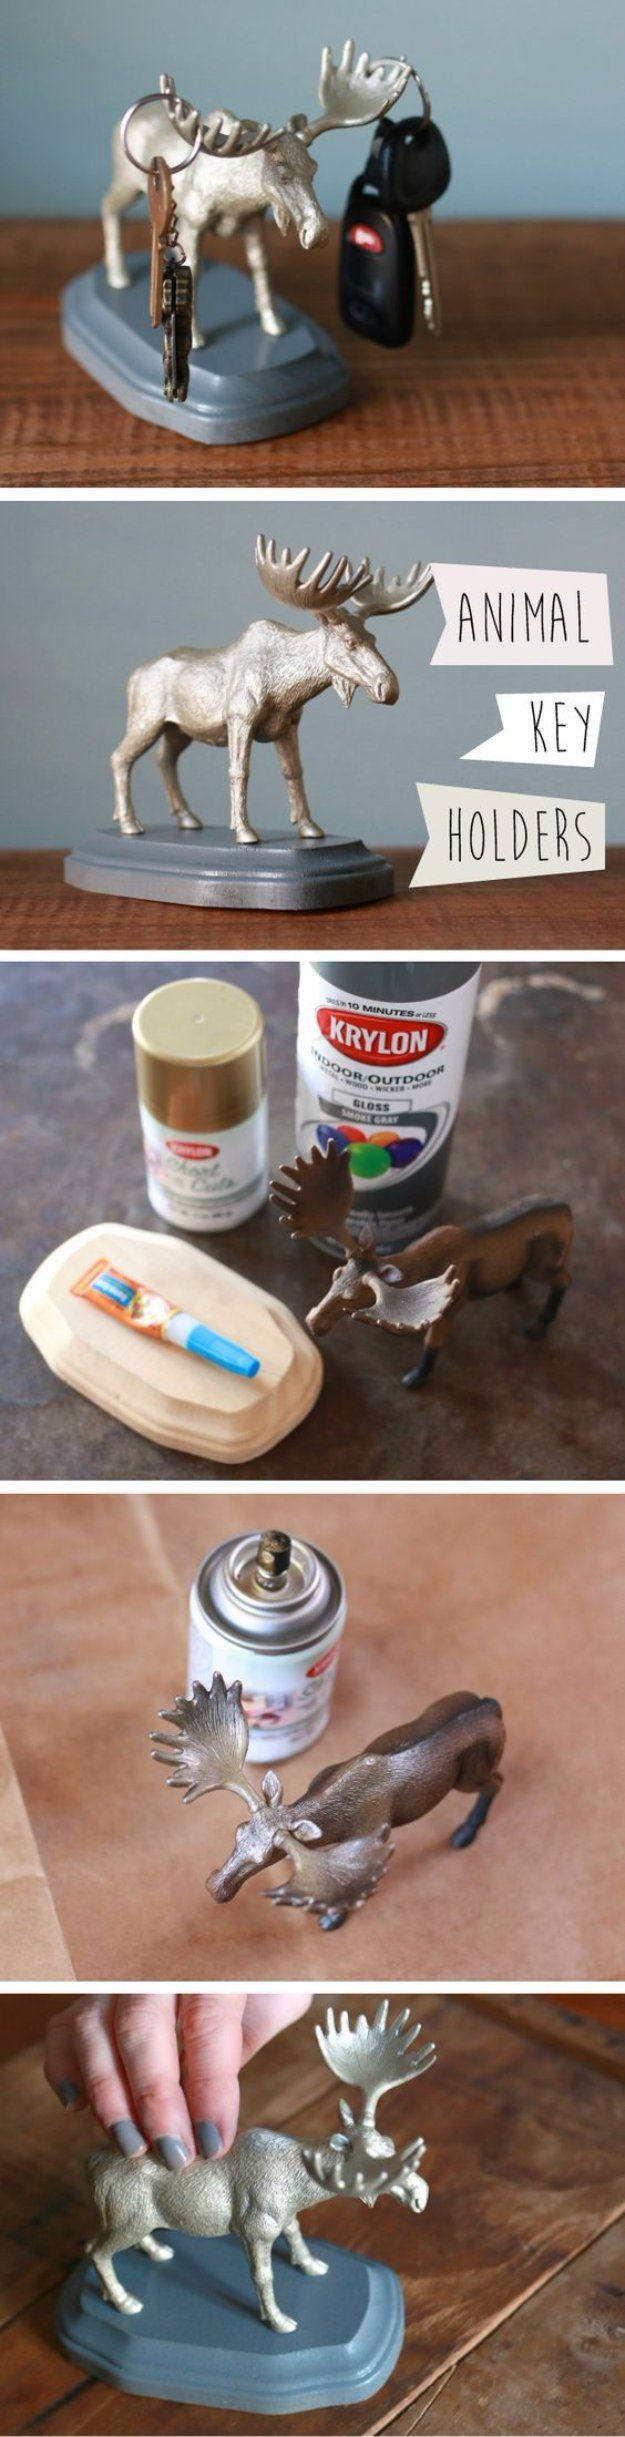 Easy Crafts To Make And Sell Animal Key Holders Cool Homemade